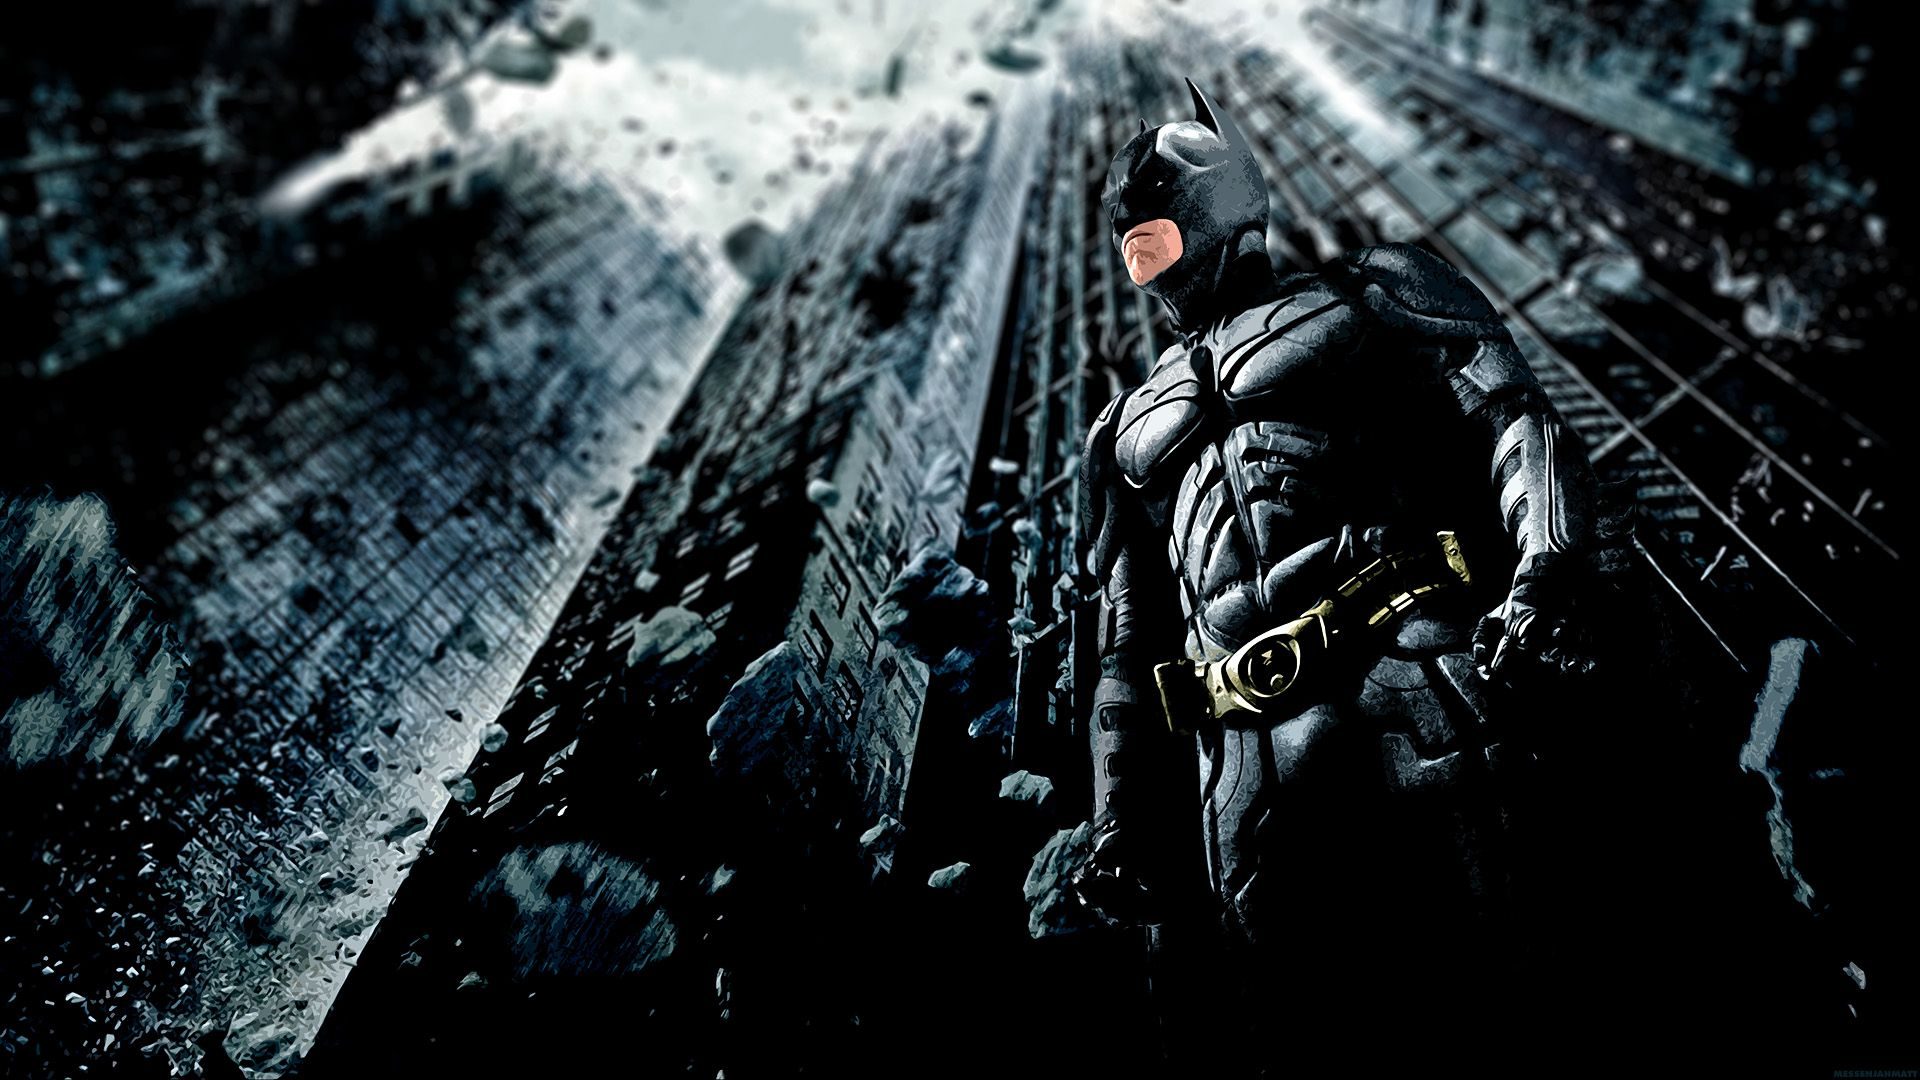 Batman Wallpaper HD download free | HD Wallpapers ...